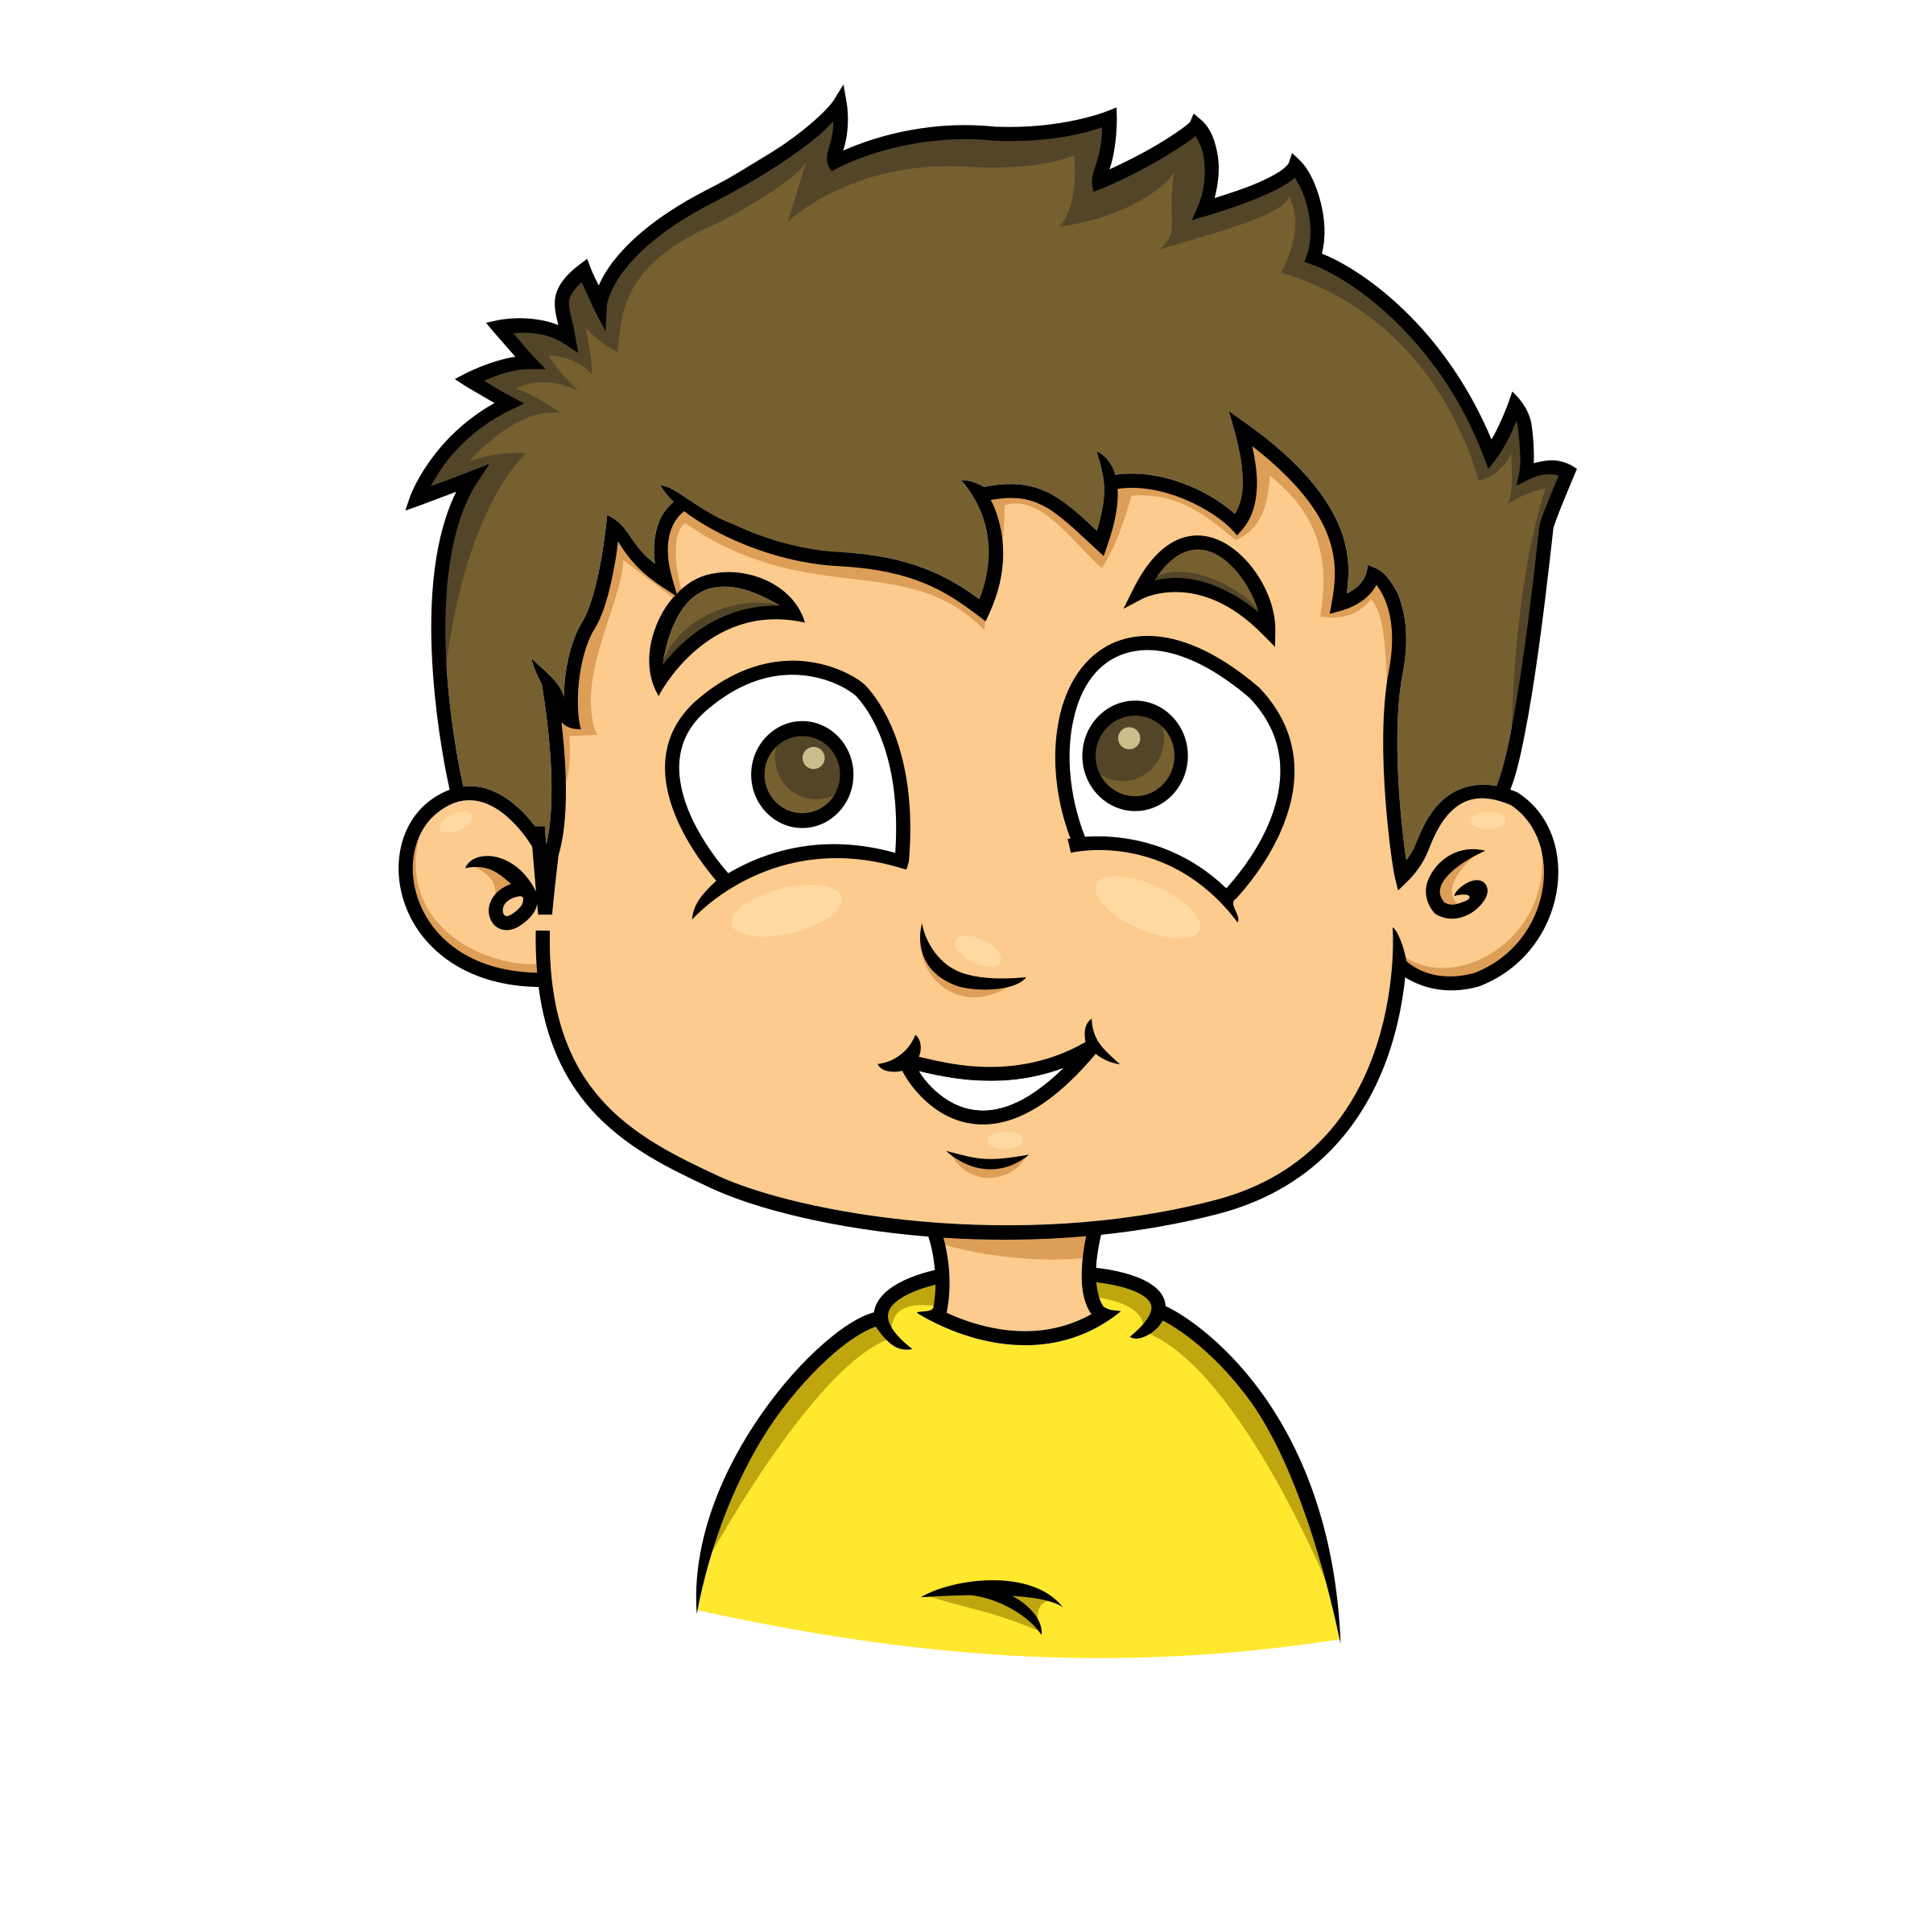 Smiling face of a. Excited clipart small kid